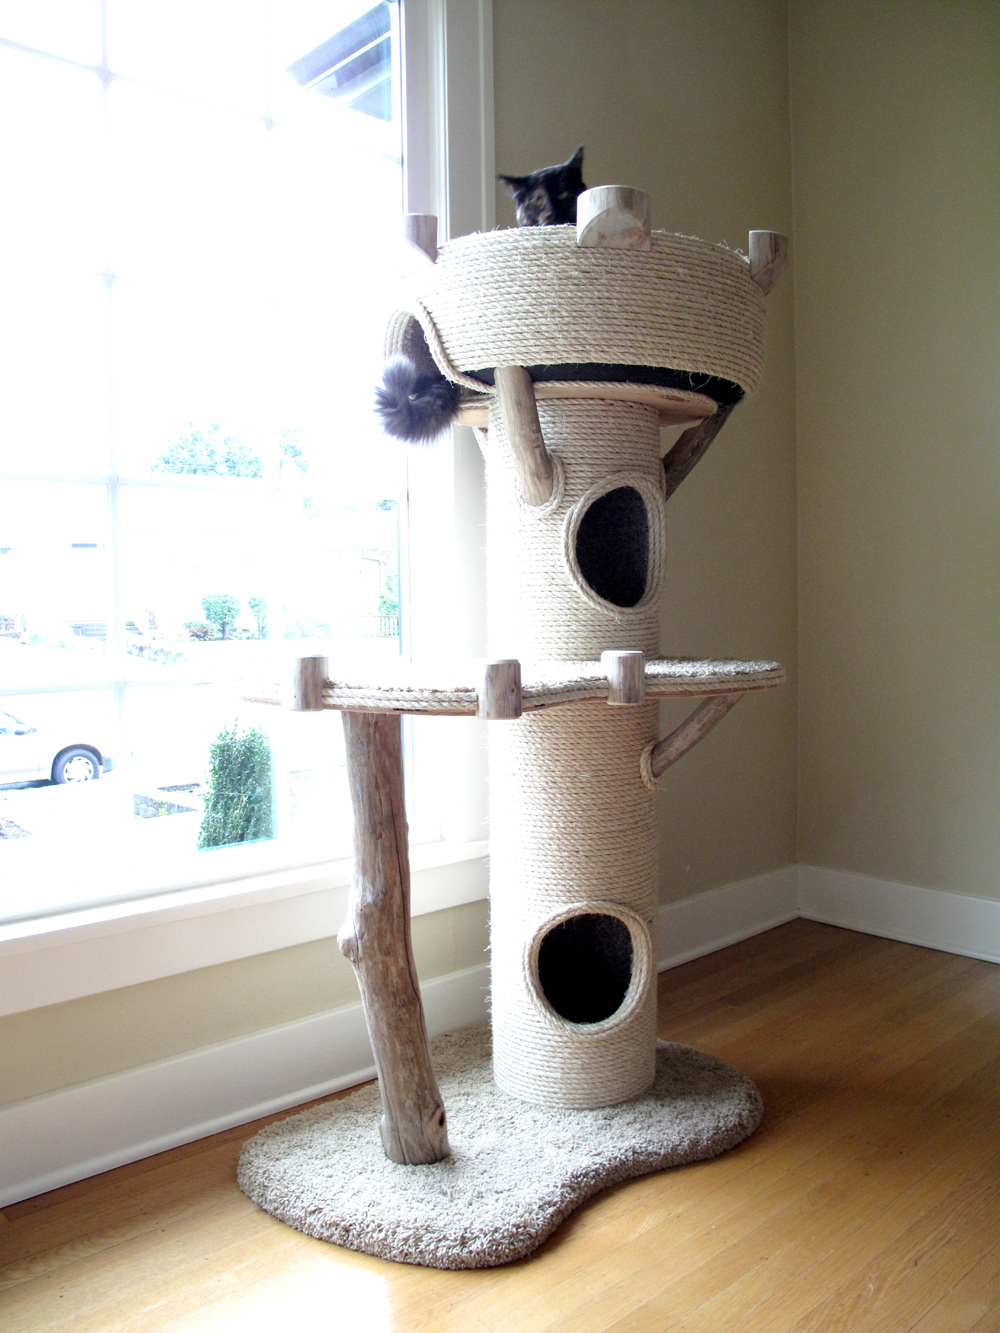 ... Plans together with Greenhouse Outline. on cat tree house plans free